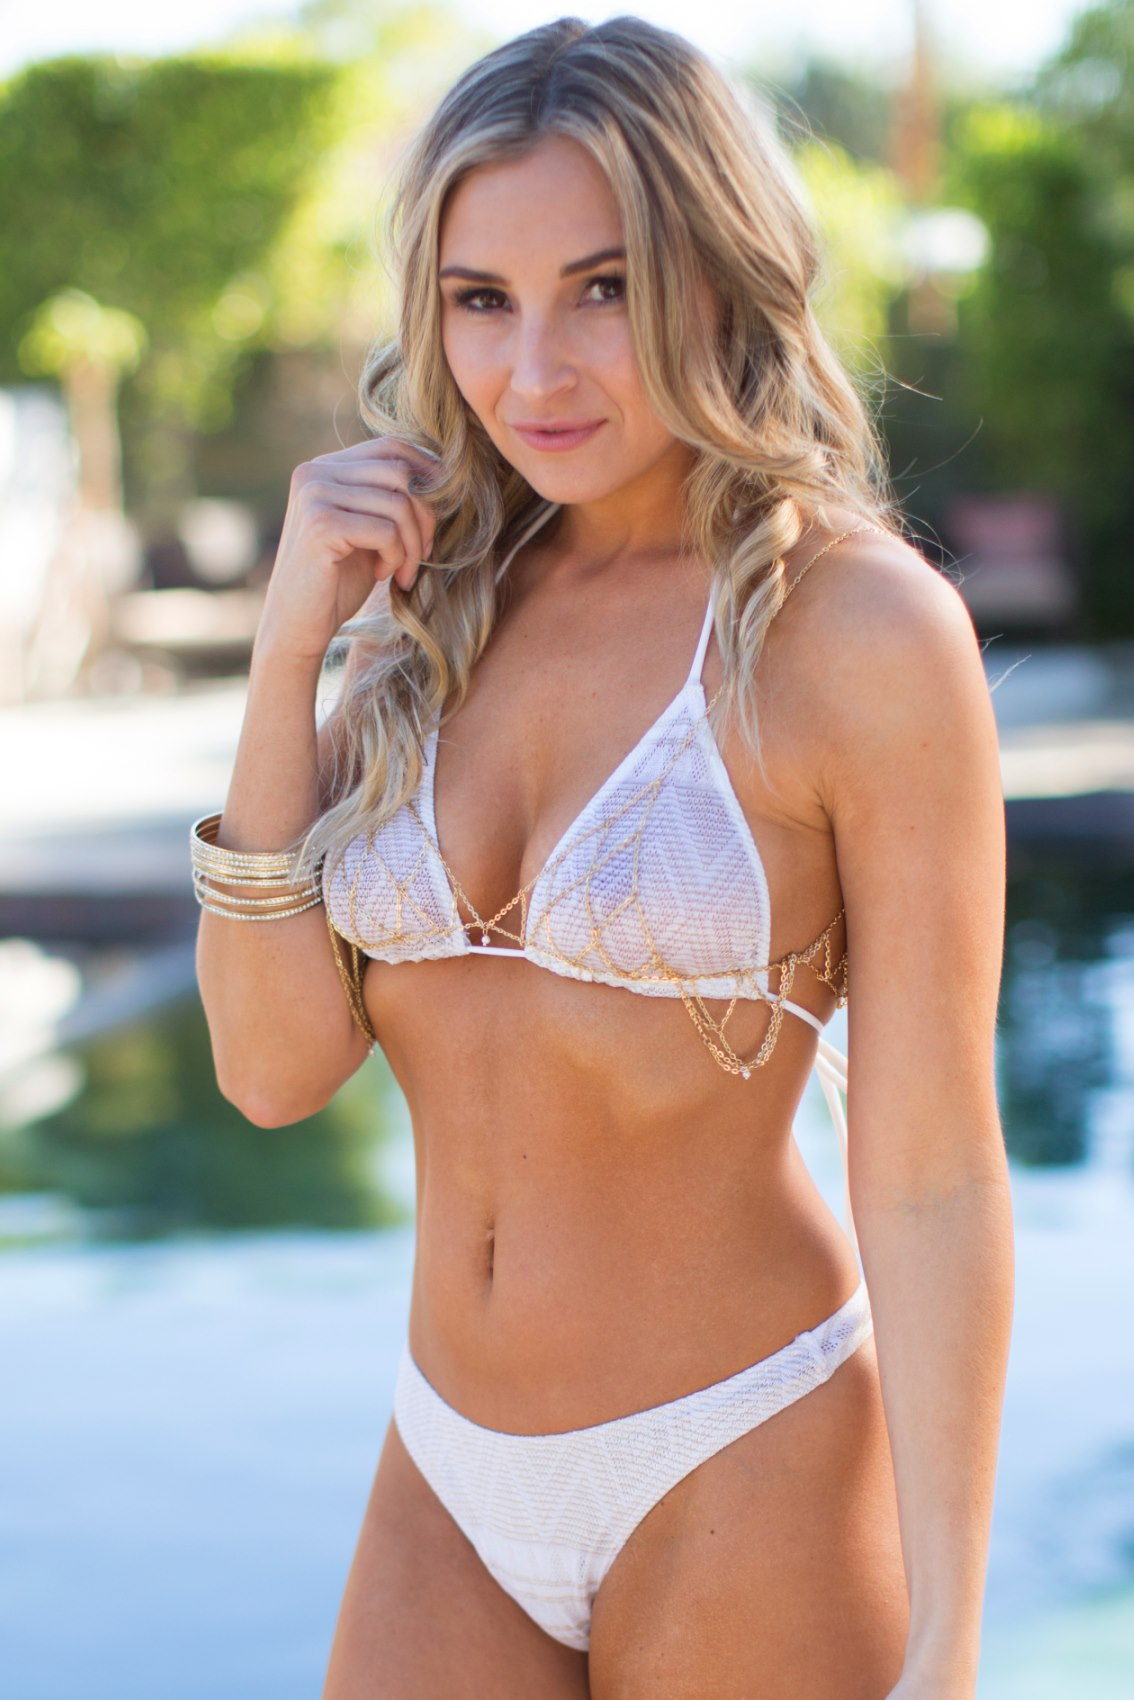 Desert Gold White/Gold Sheer Bikini Top